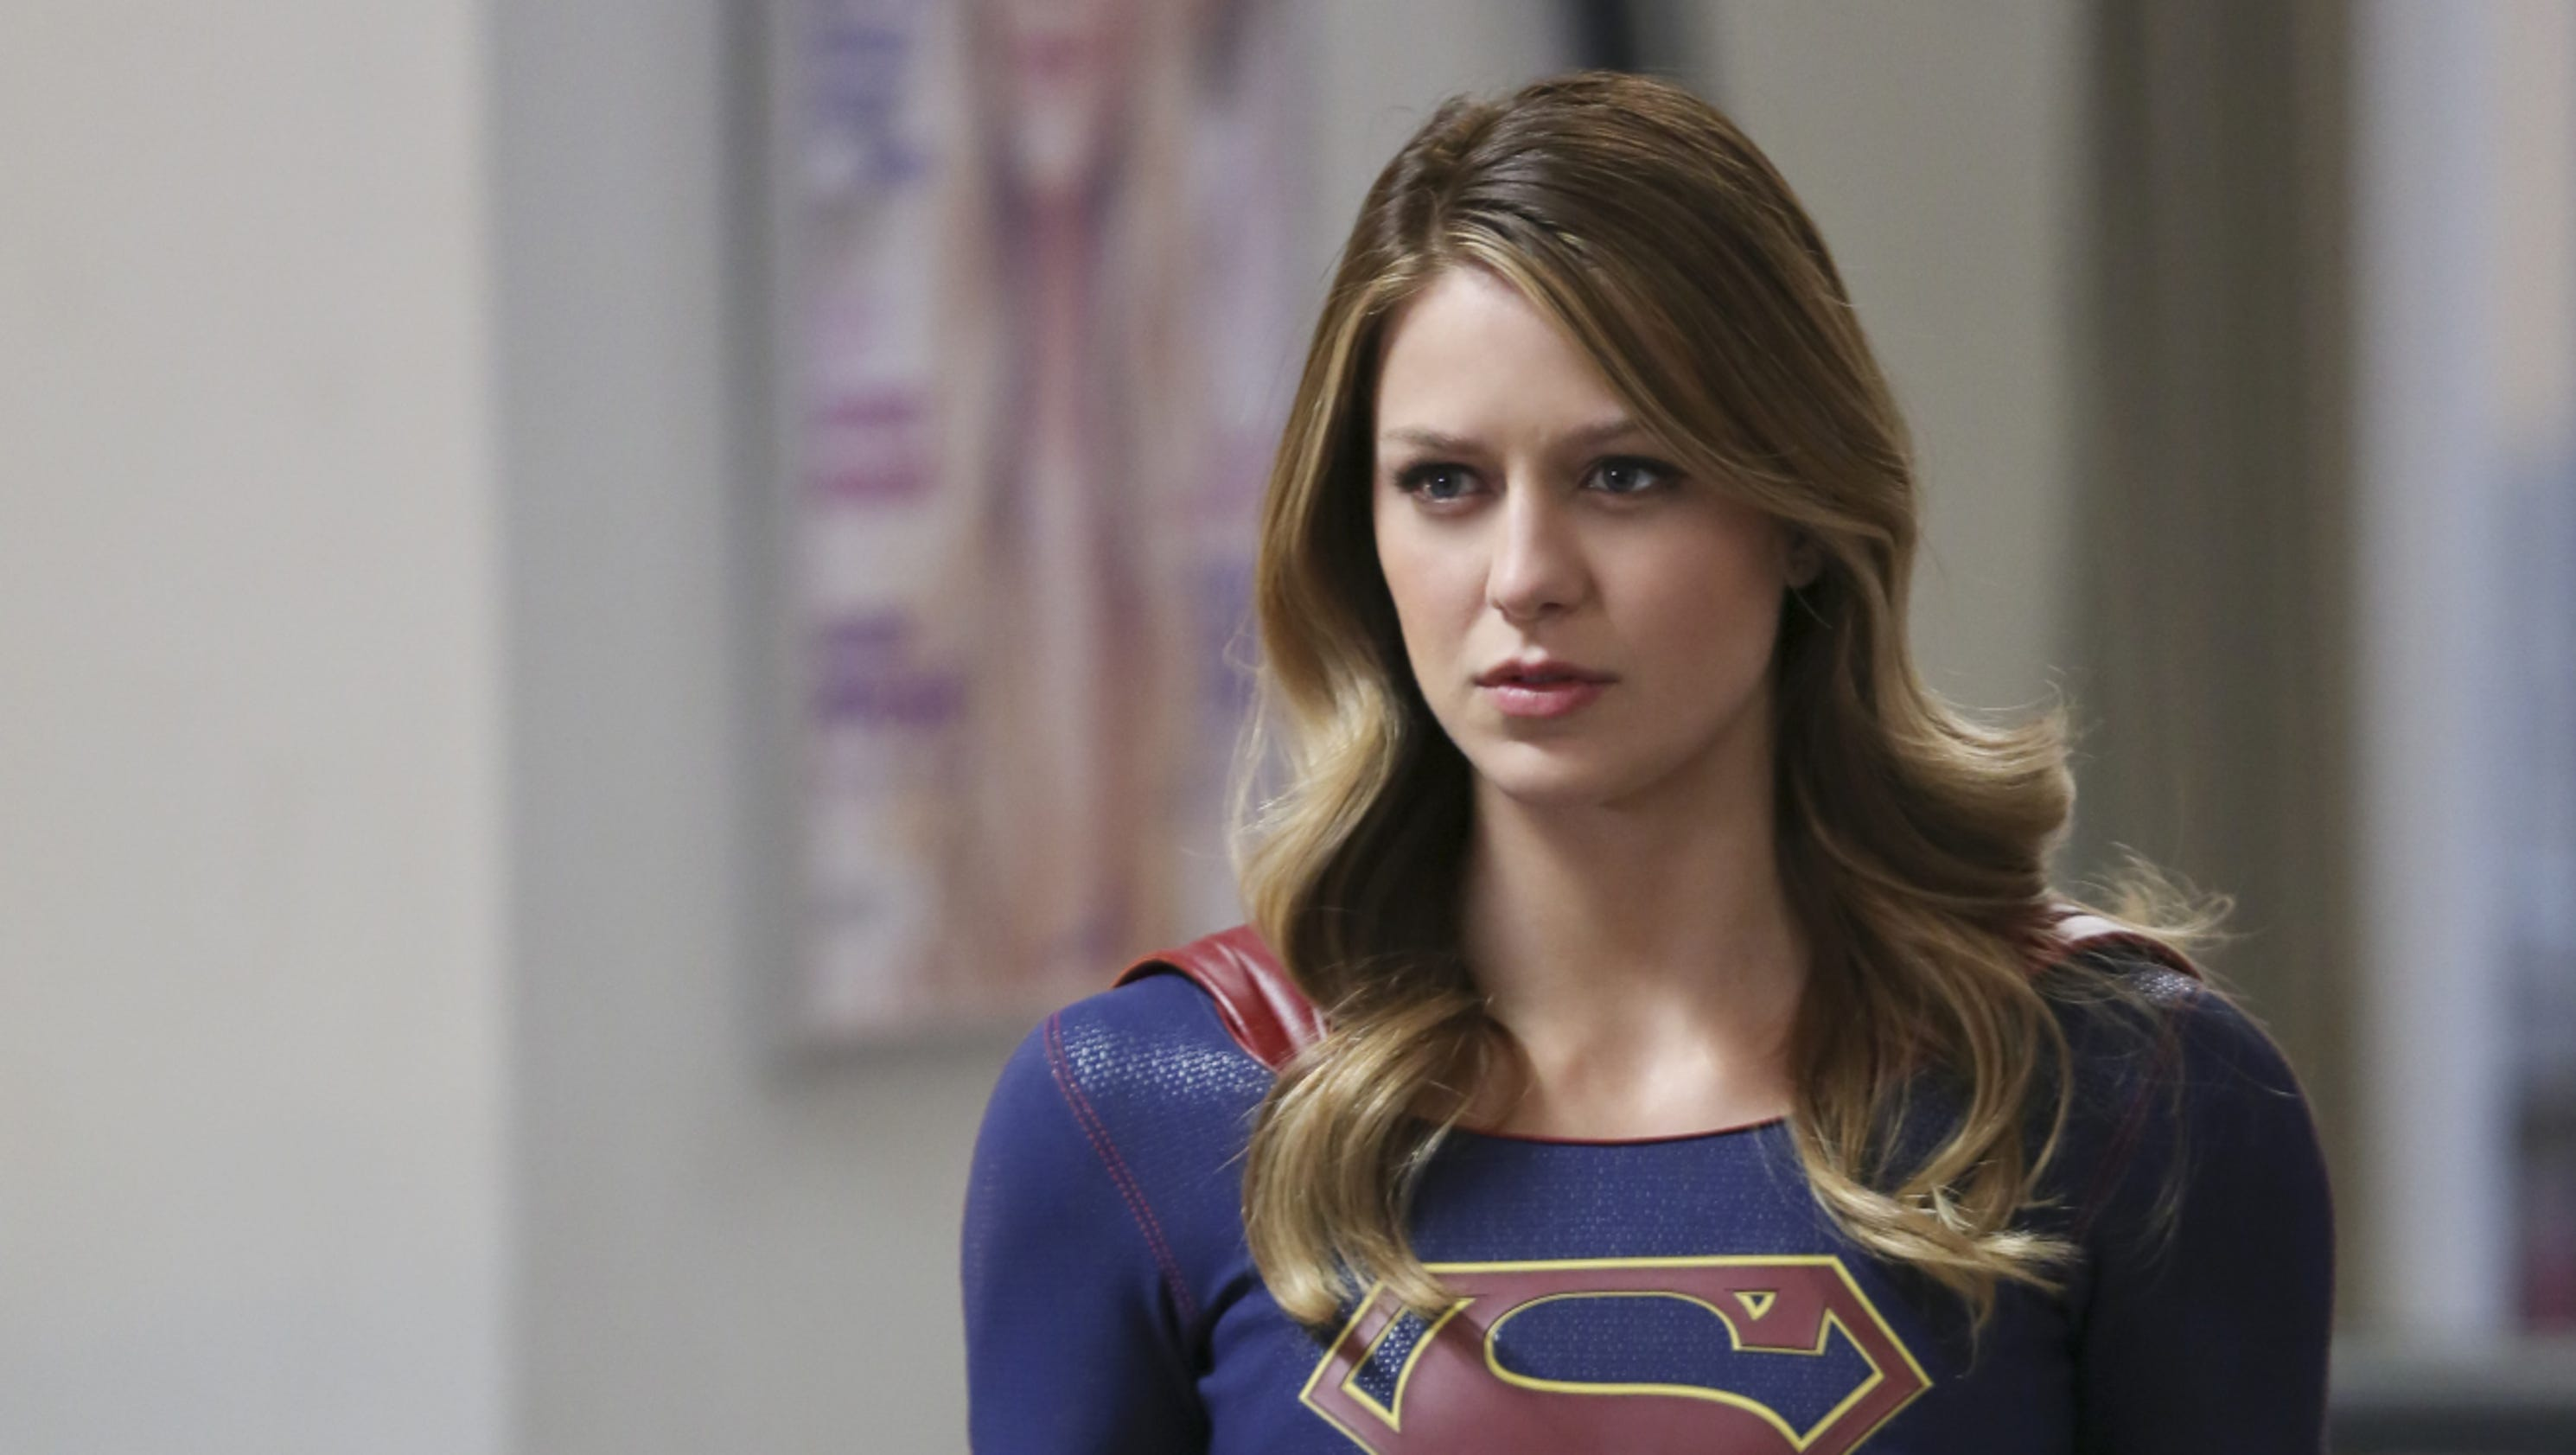 Get To Know Kara Danvers' Superfamily In New 'Supergirl' Clip